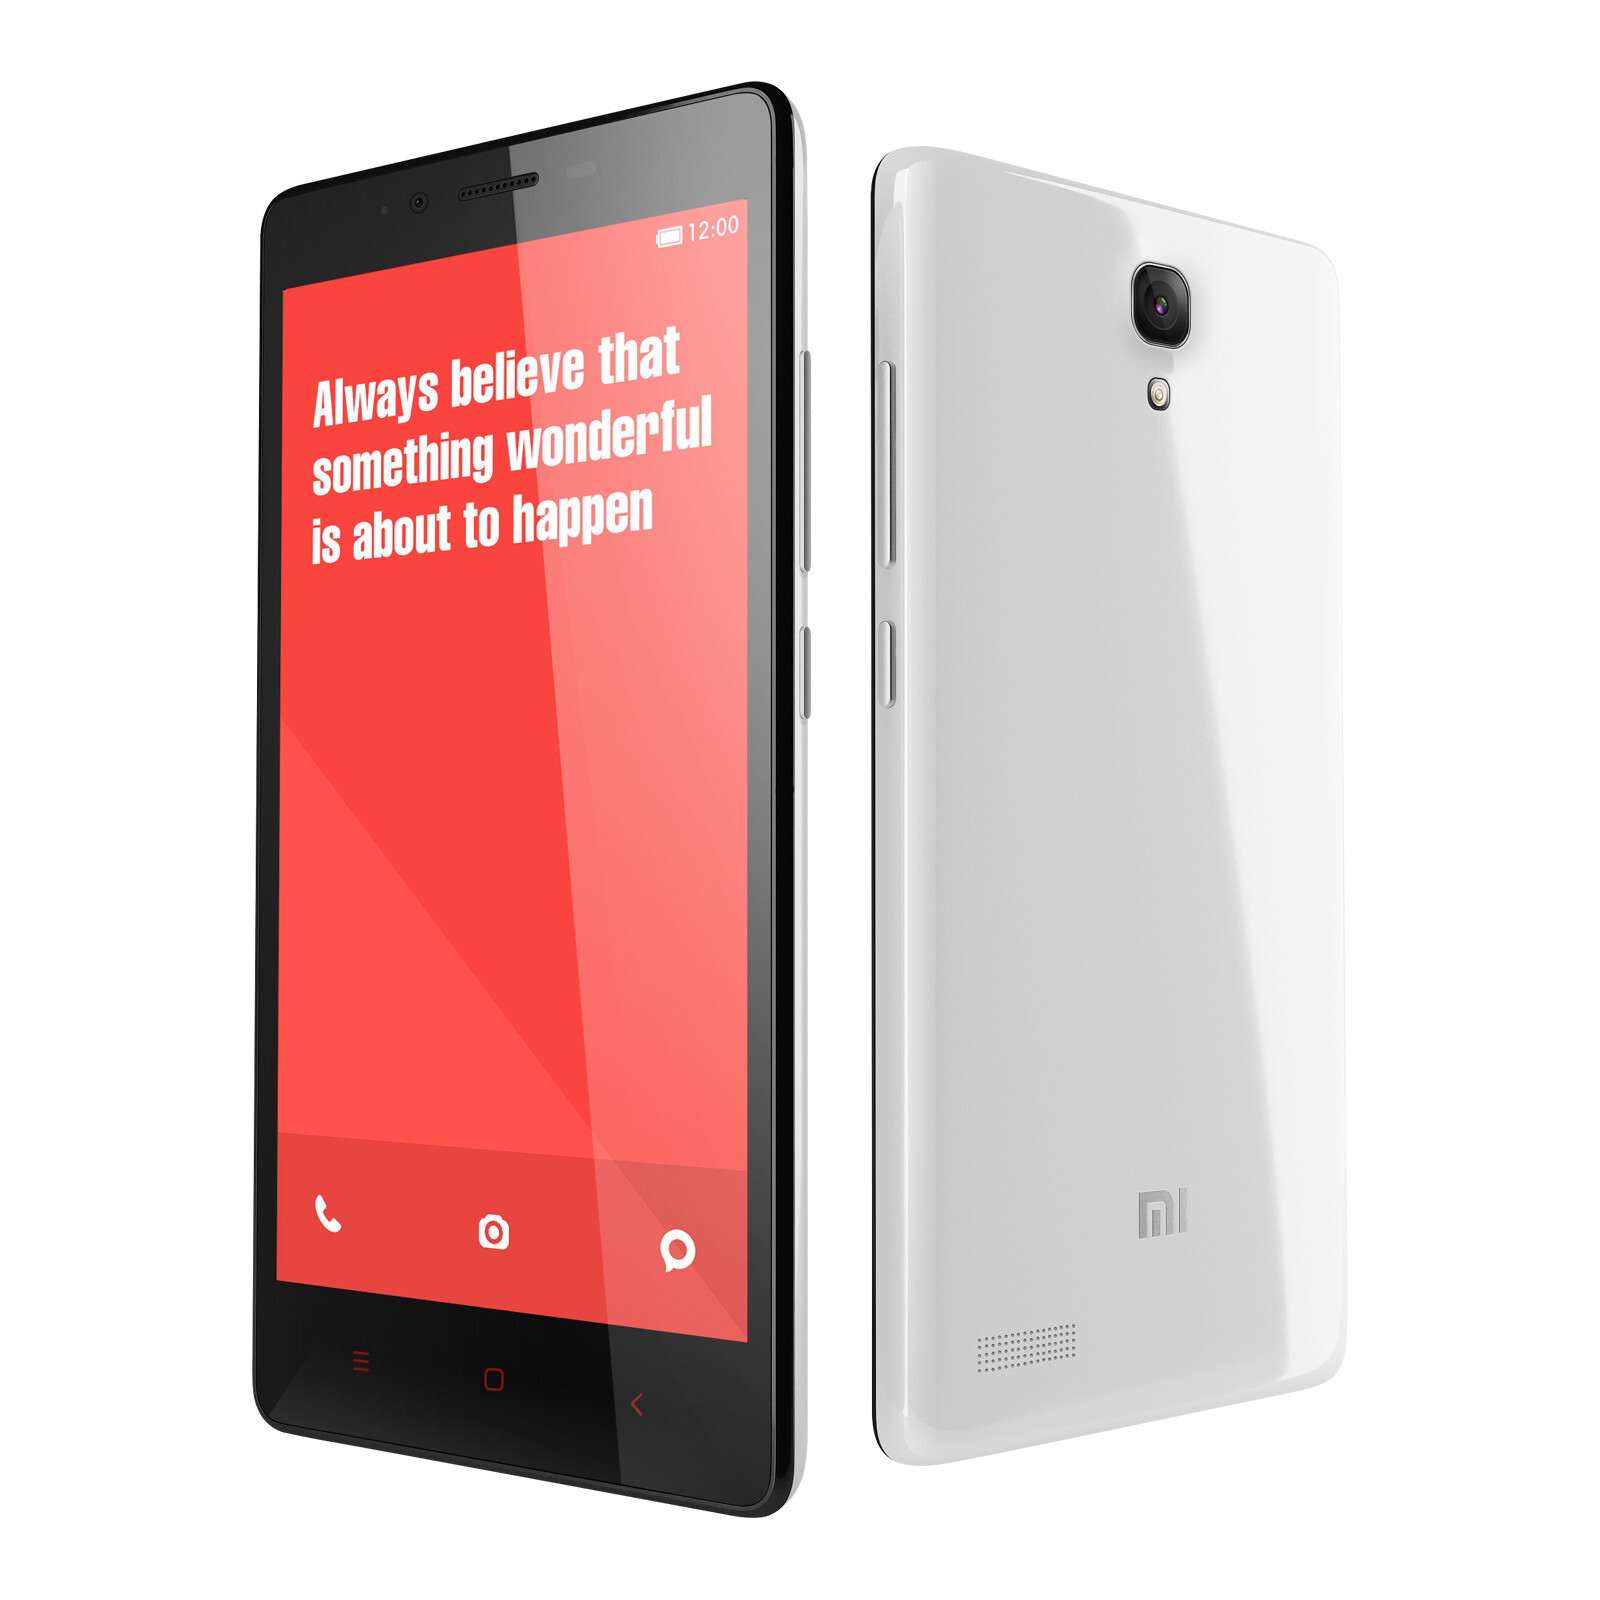 Xiaomi Launches The Redmi Note Prime In India An Updated